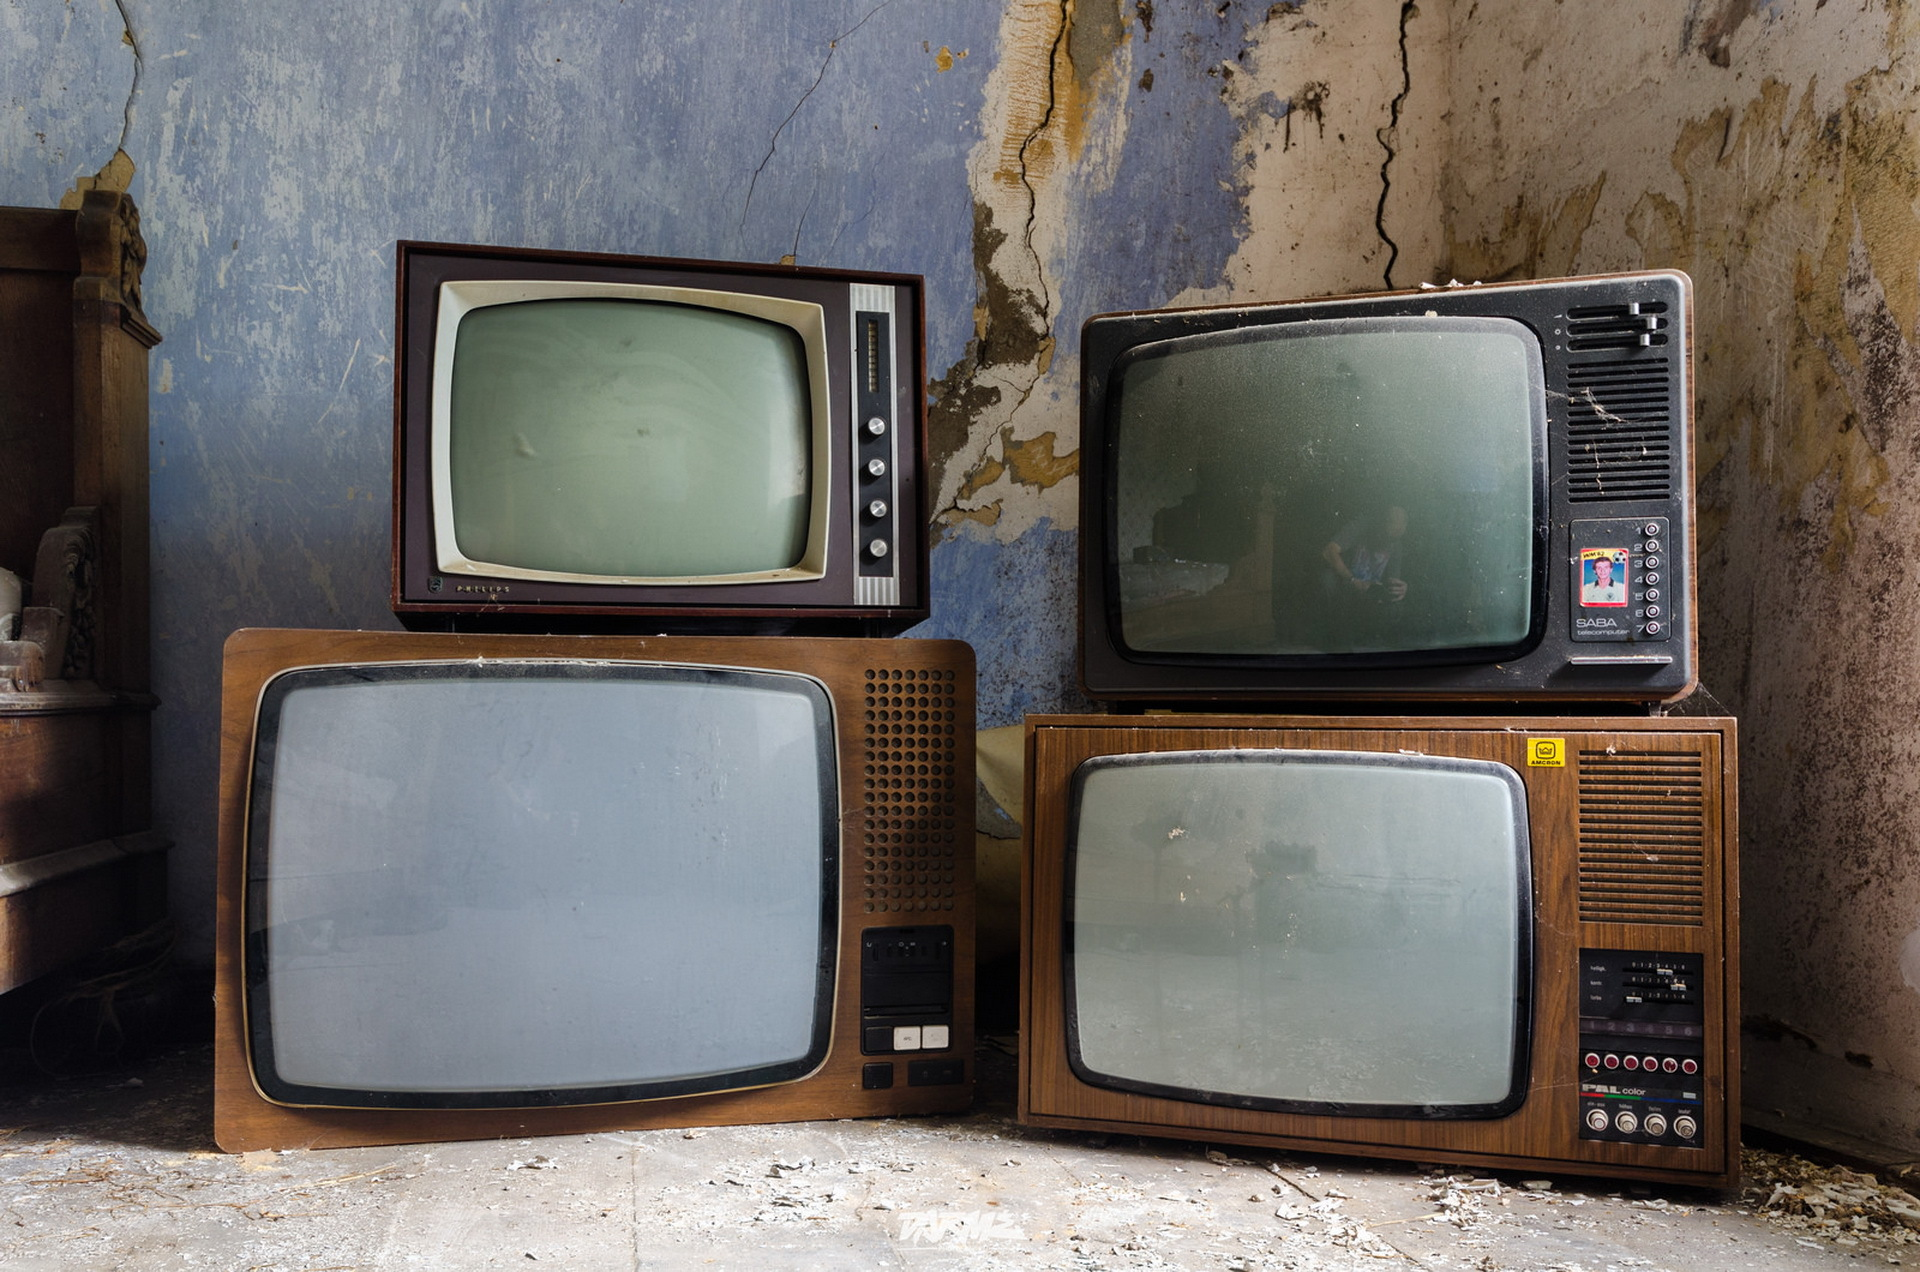 The Russian government decides how and when the country switches to digital broadcasting